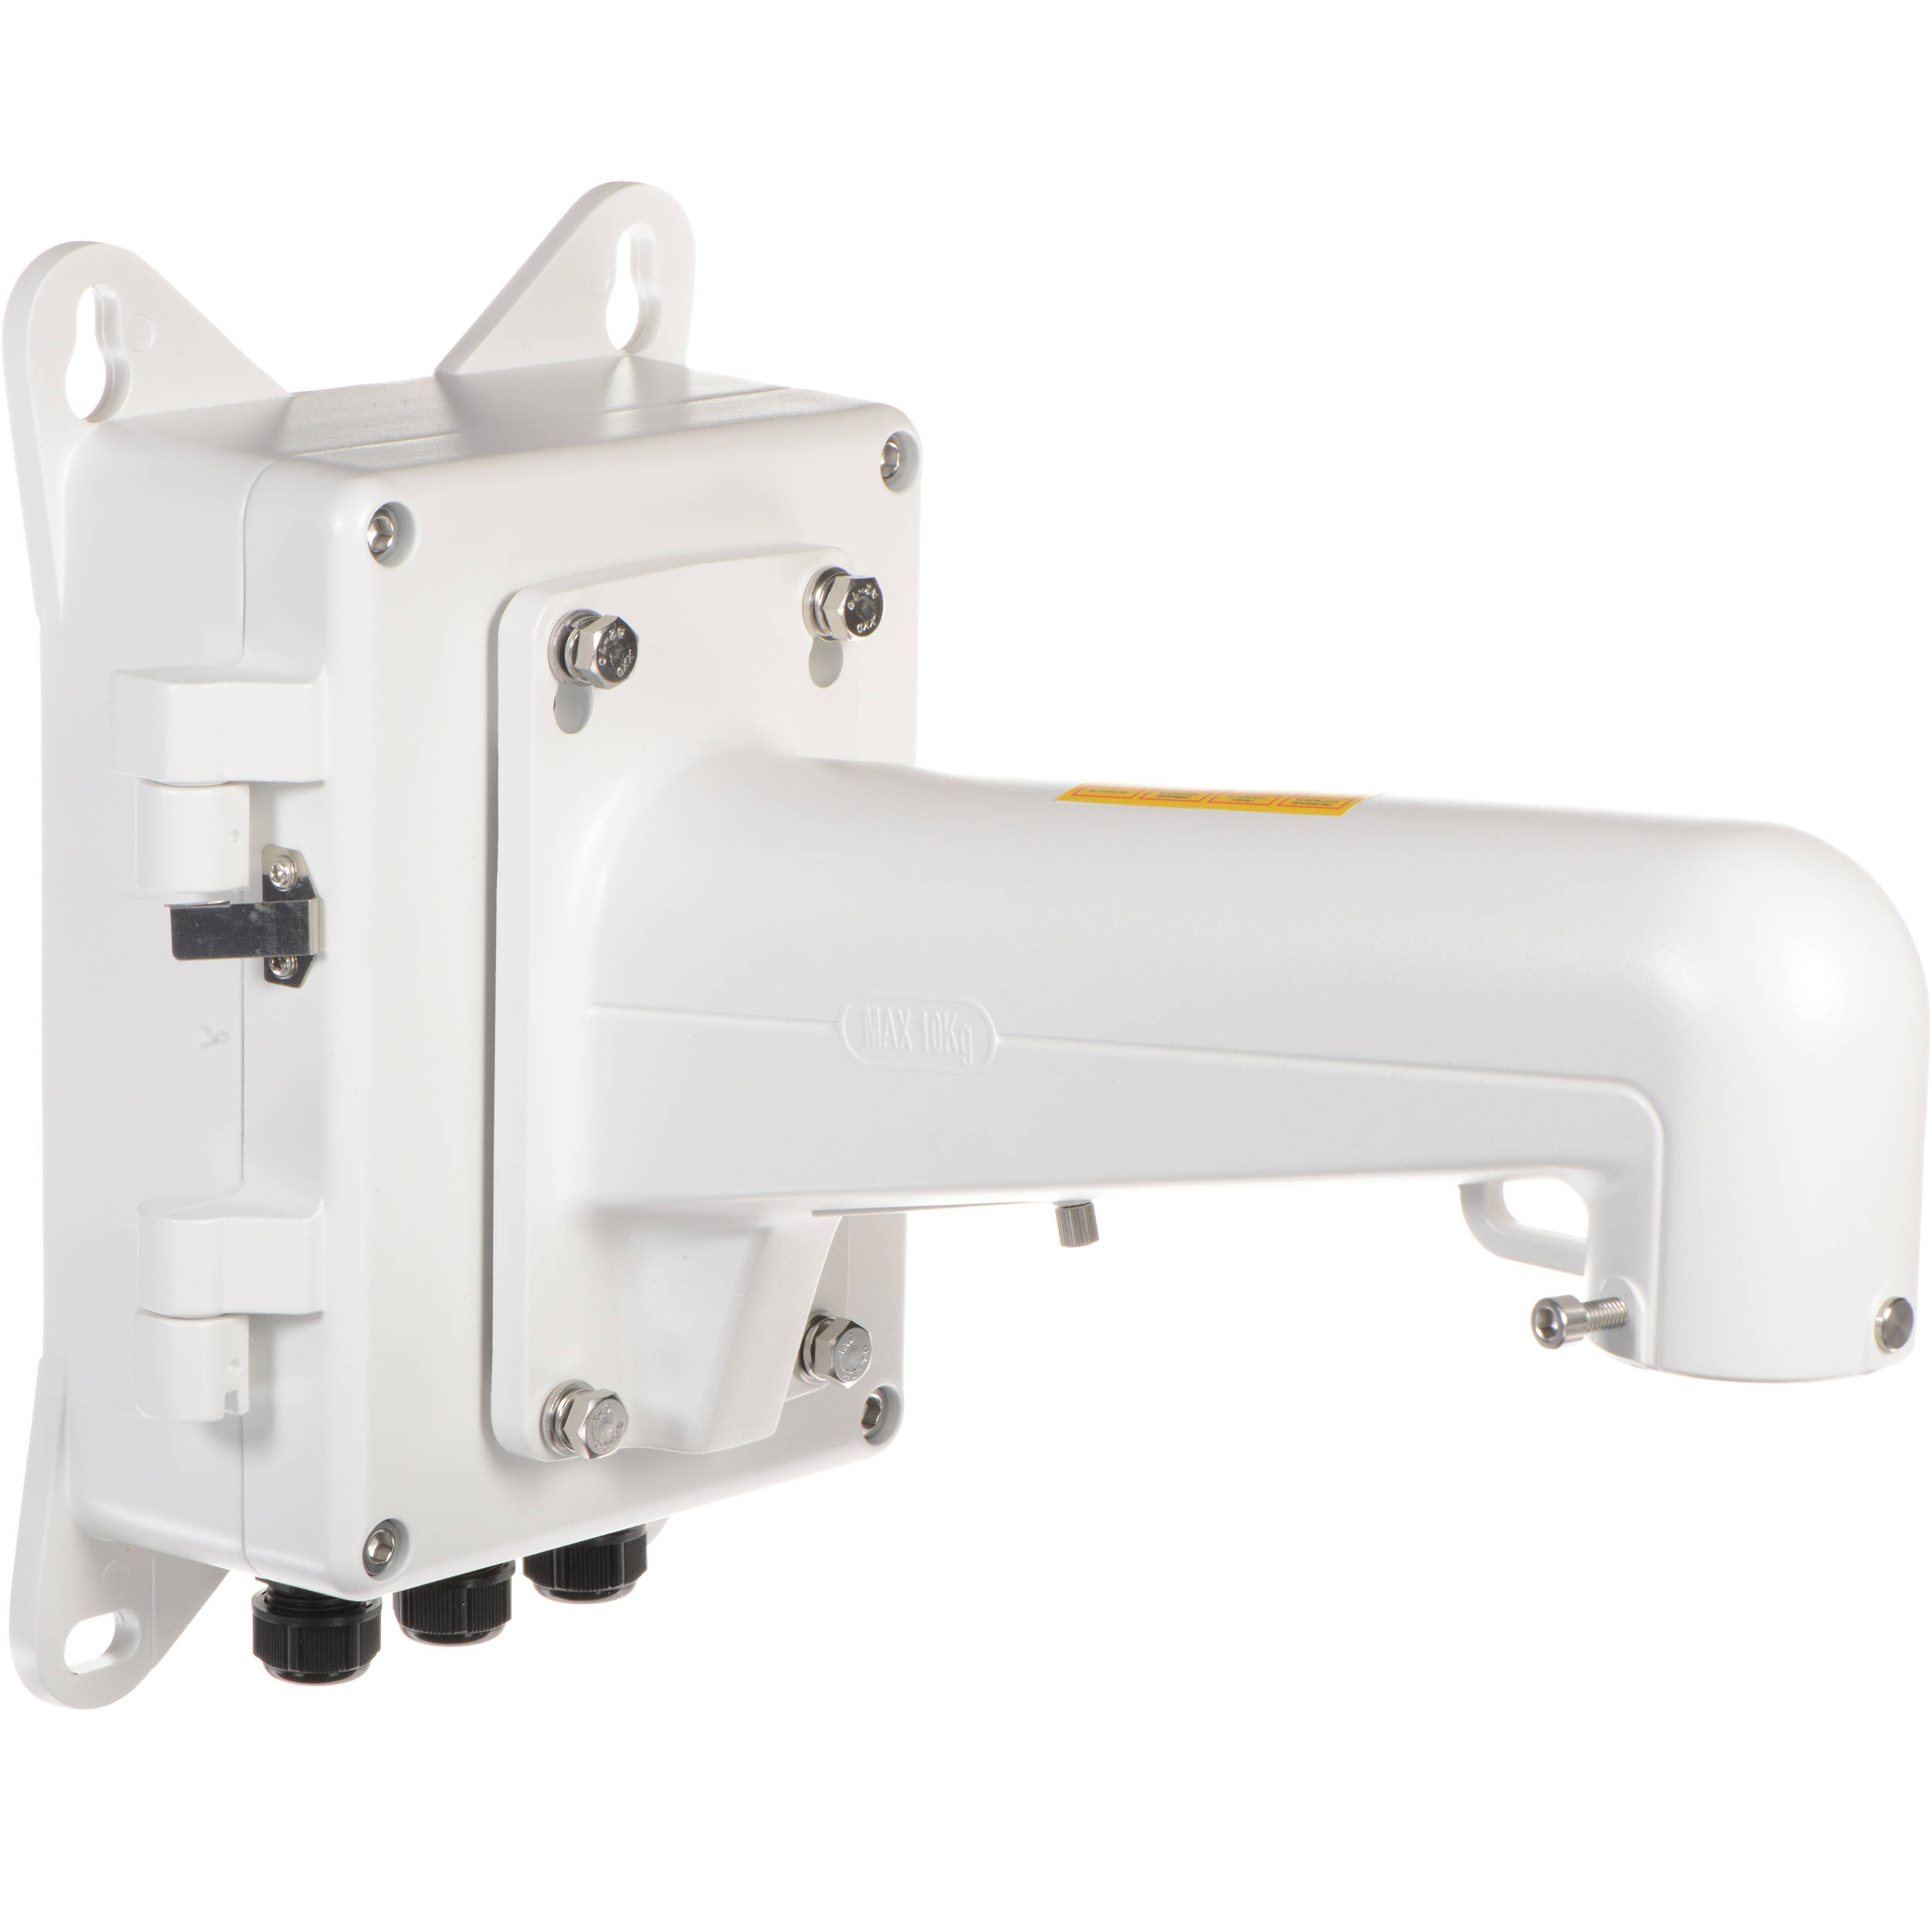 Hikvision jbp w outdoor ptz junction box with wall mount jbpw hikvision jbp w outdoor ptz junction box with wall mount bracket sciox Choice Image